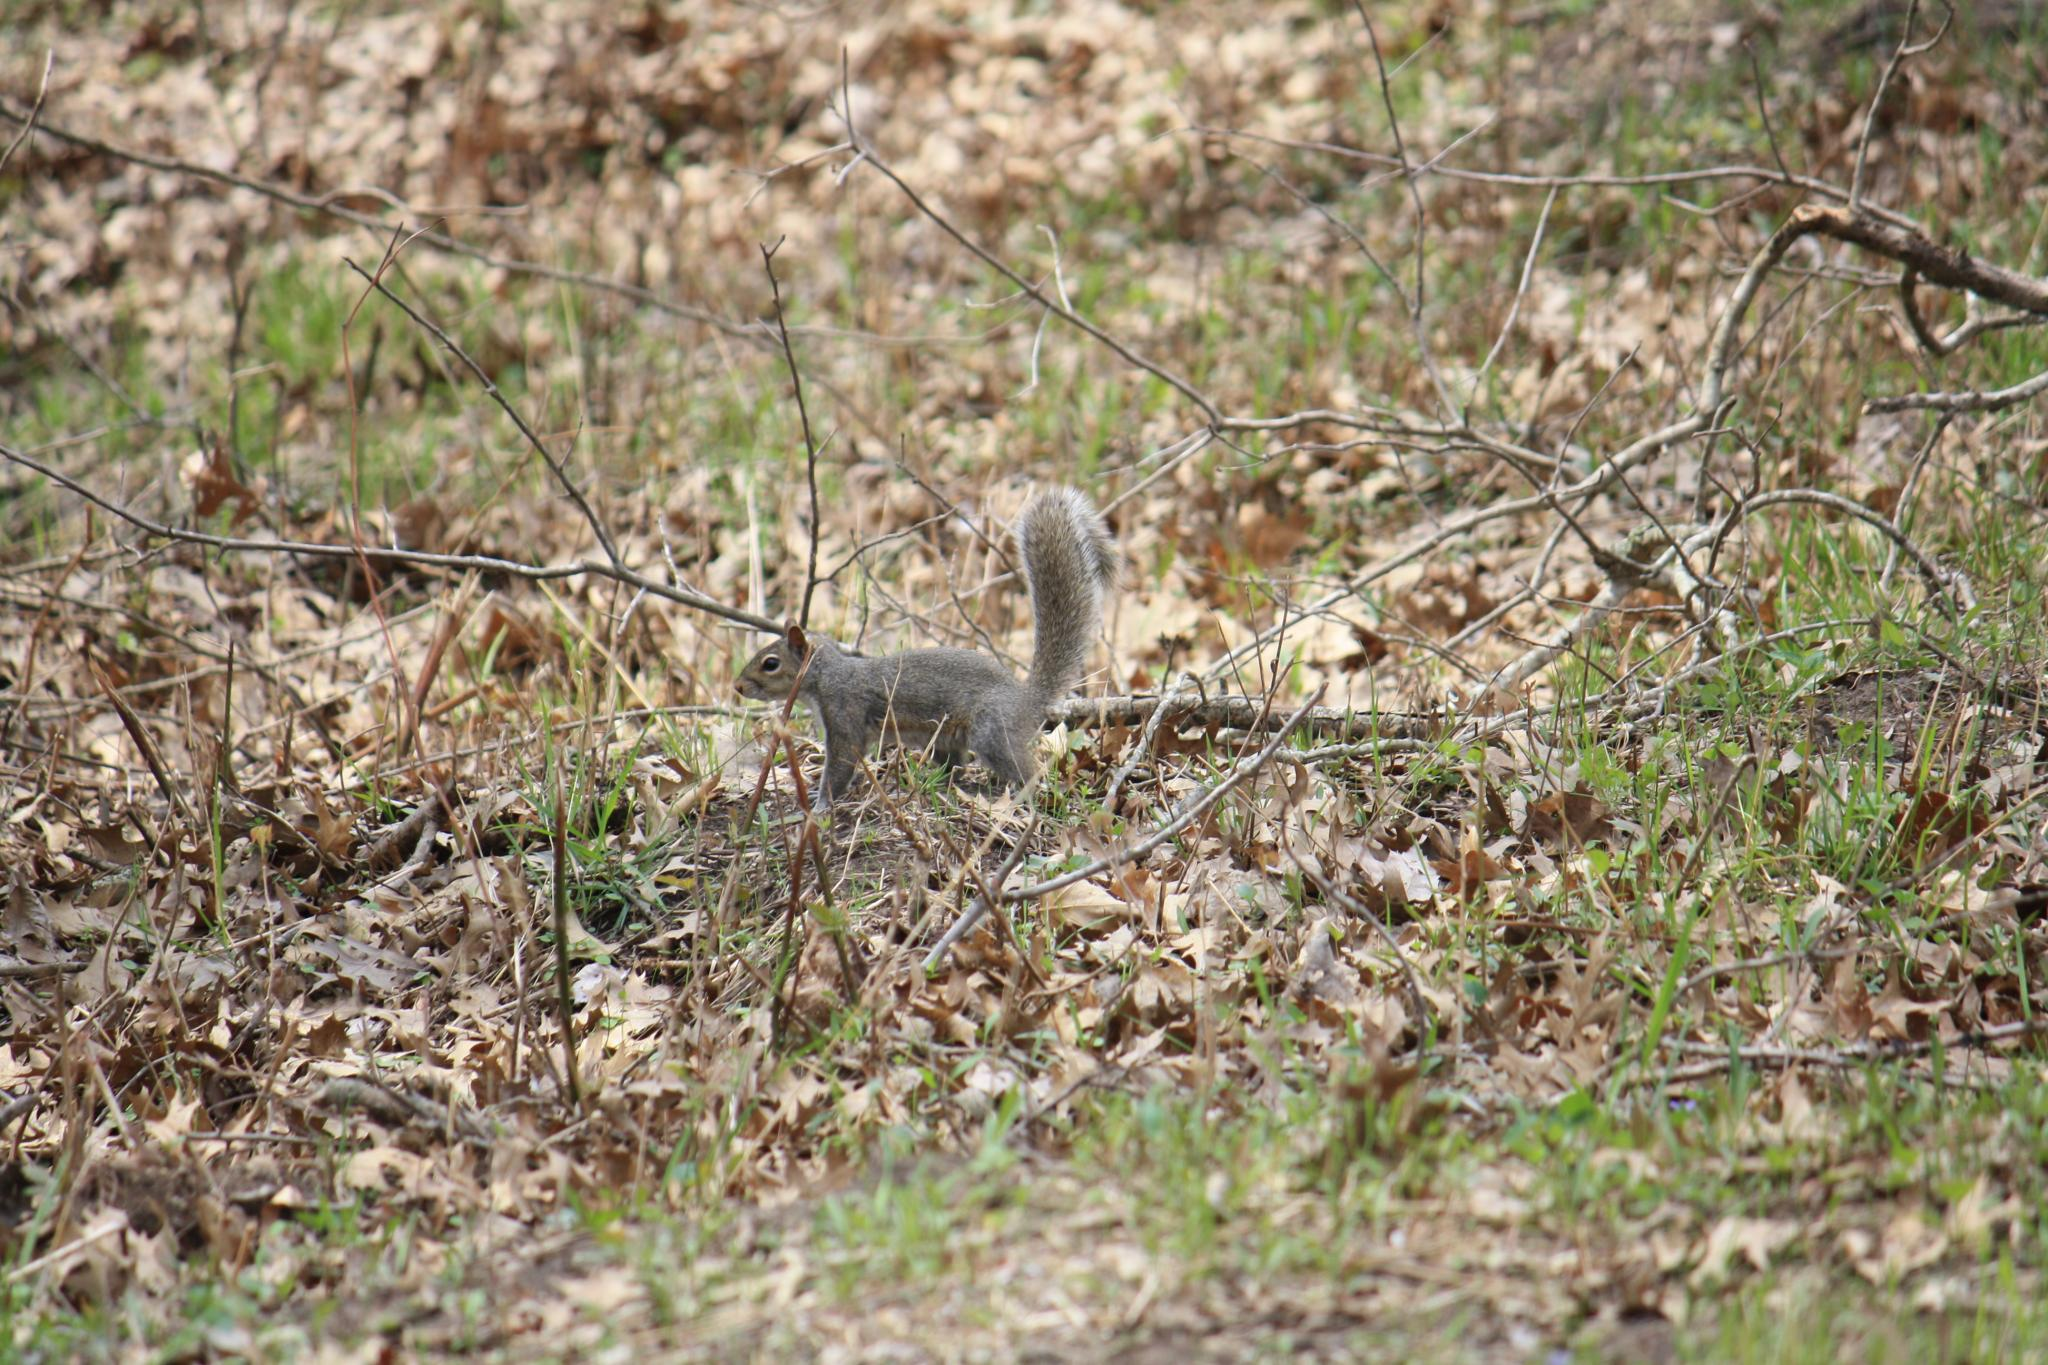 Gray squirrel on log with brown leaves and grass on ground.